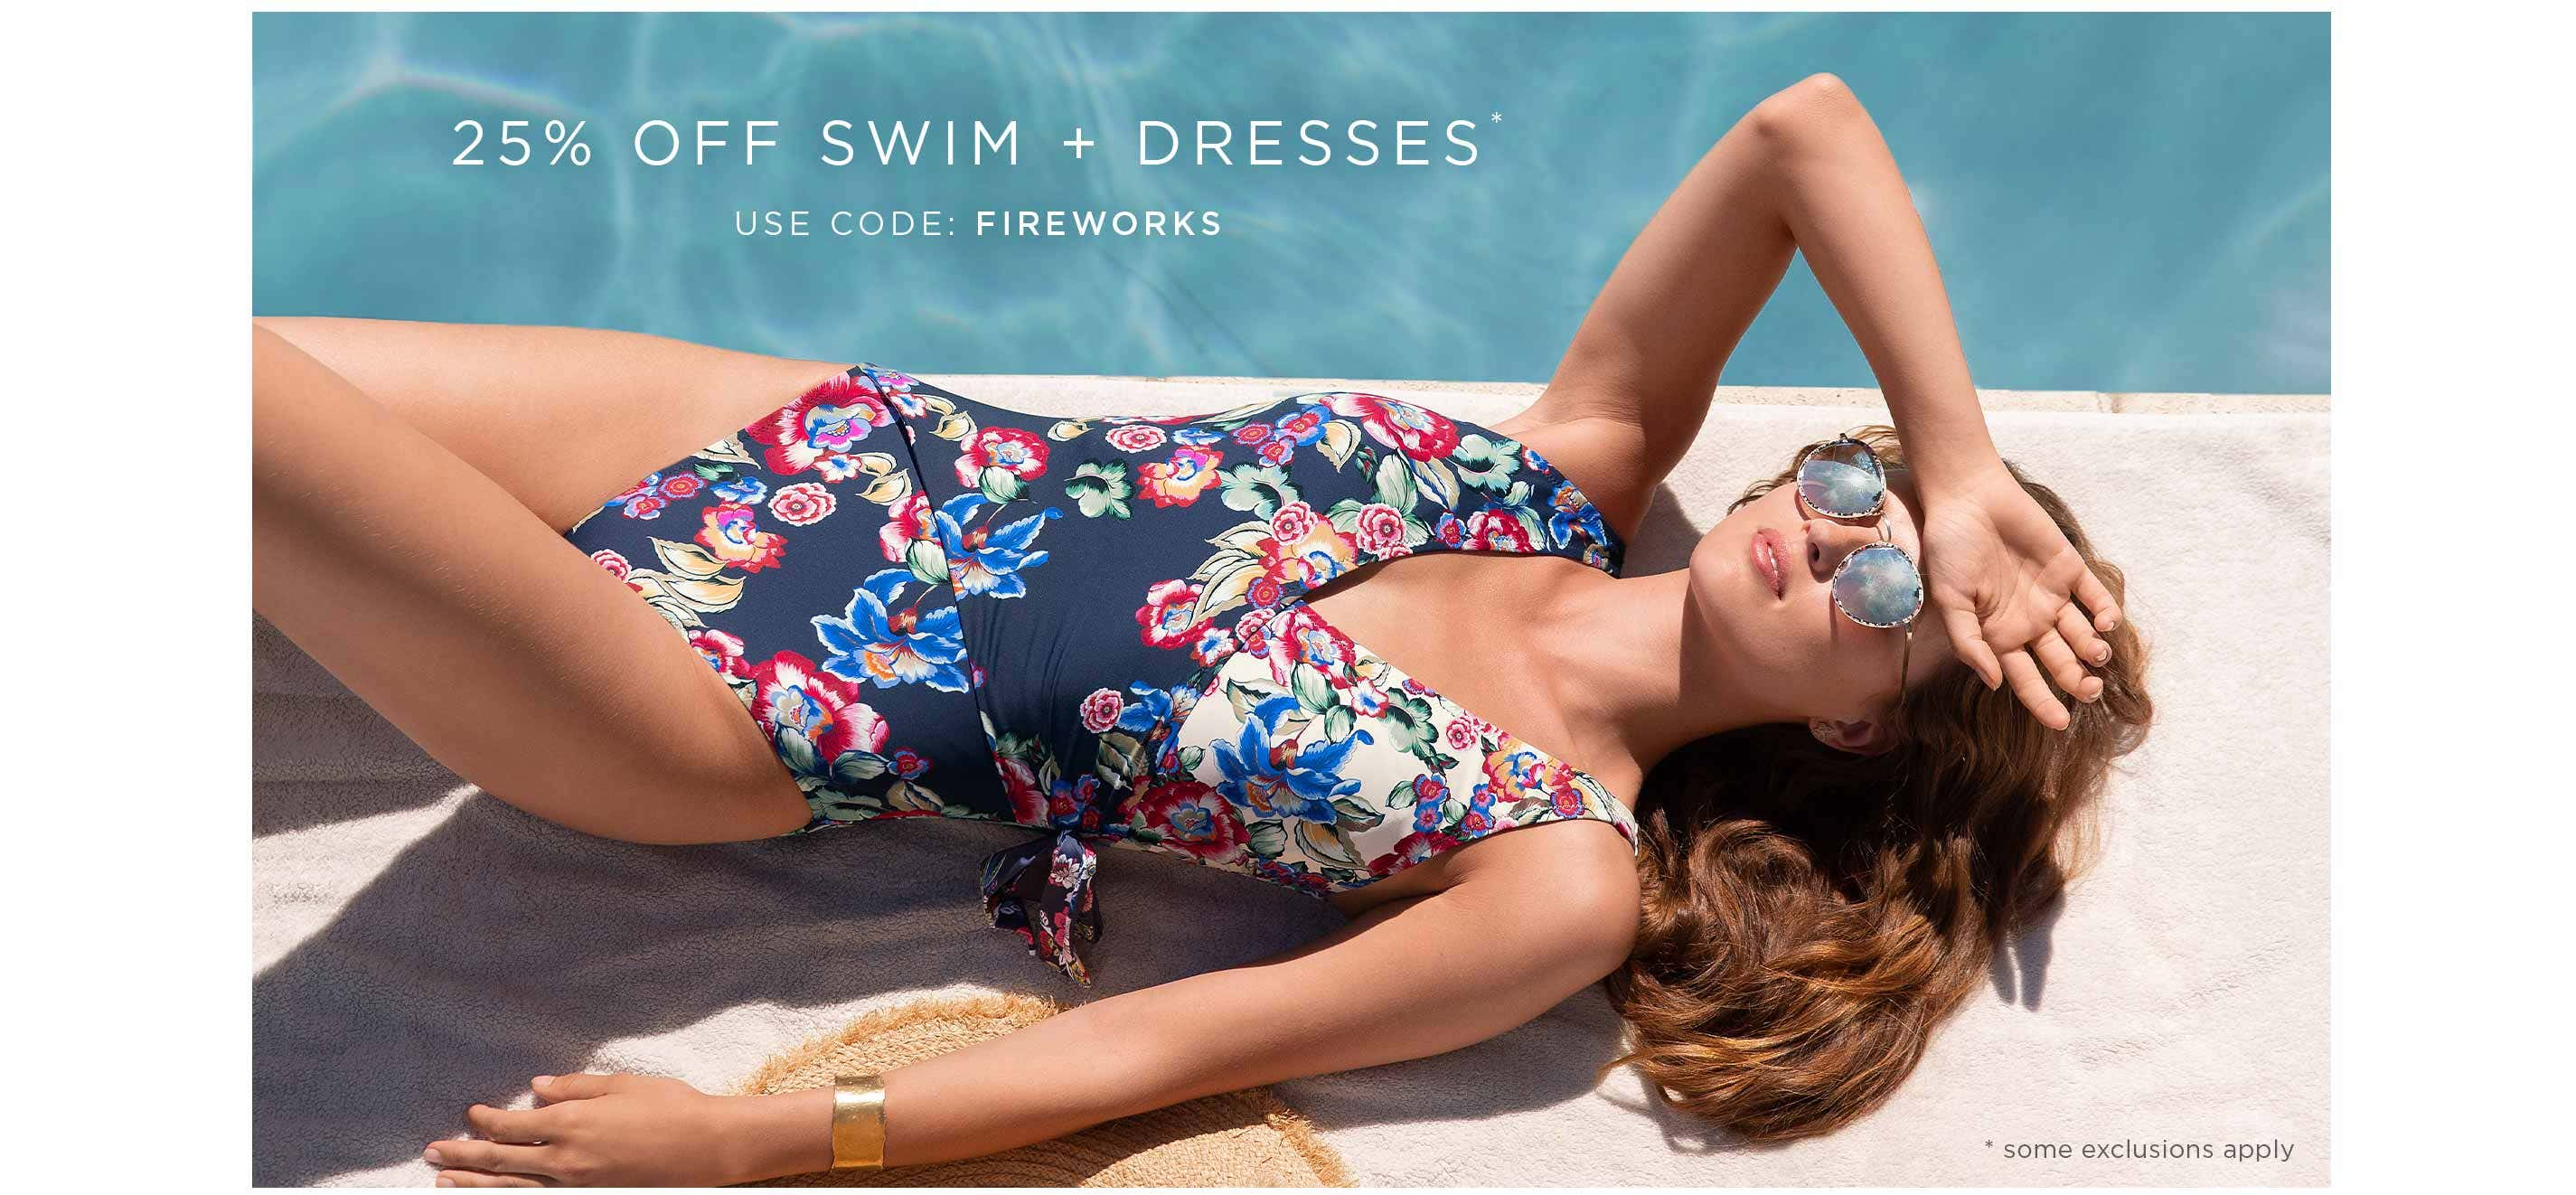 25% Off Swim + Dresses* - Use Code: FIREWORKS - * some exclusions apply